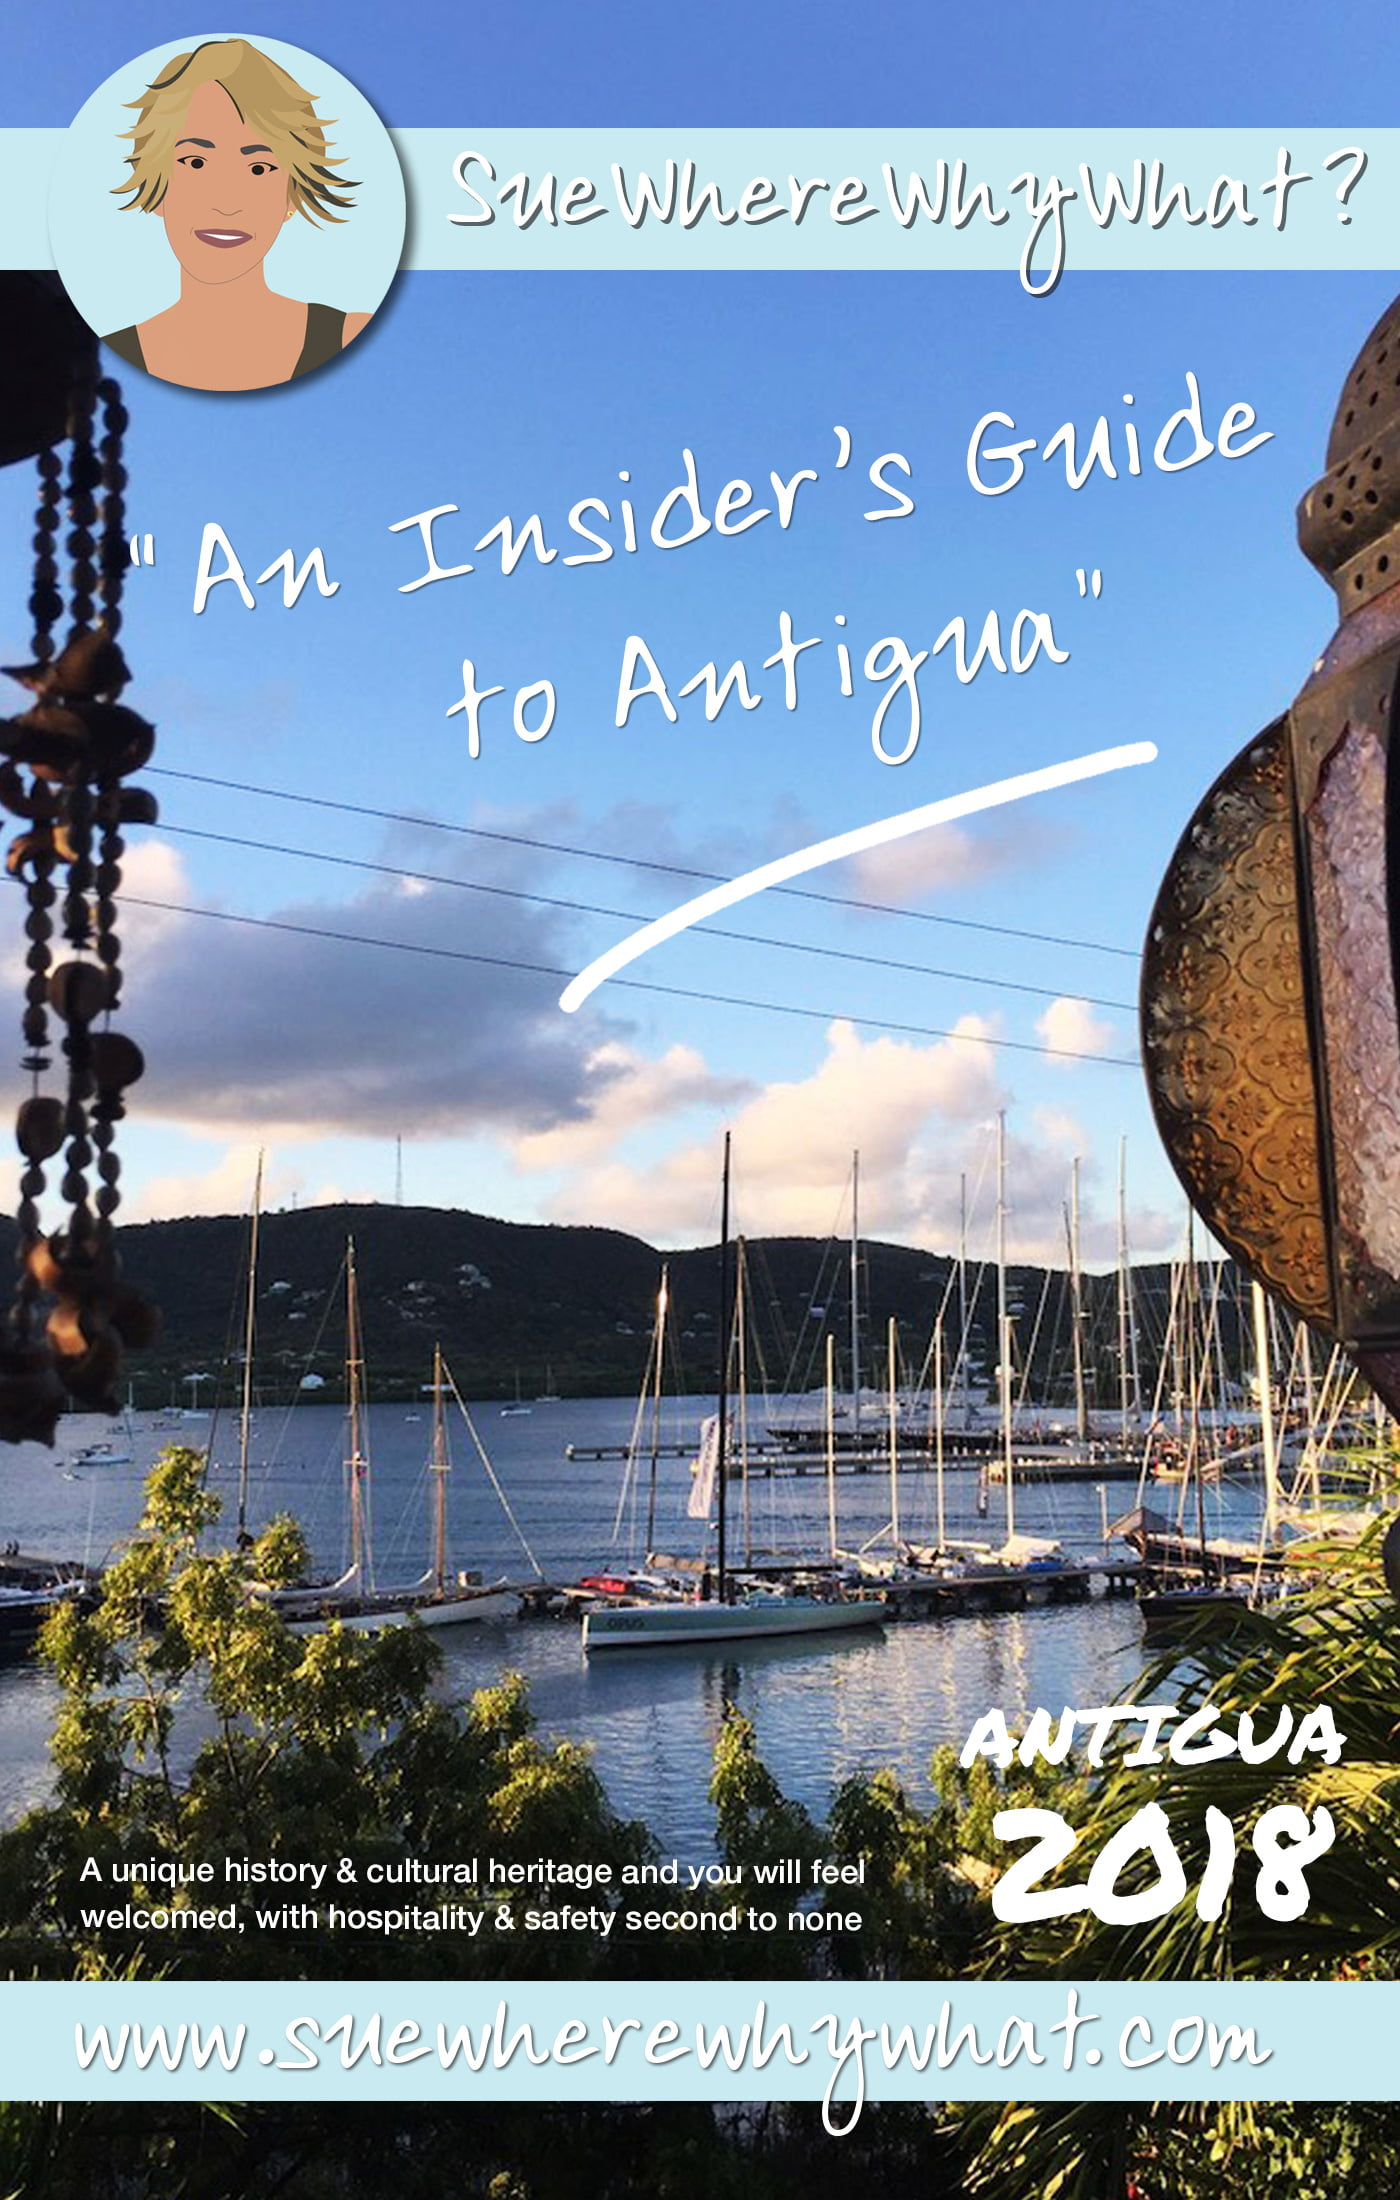 An Insider\'s Guide to Antigua And Barbuda in the Caribbean. Includes Things To Do In the Islands, St Johns, Best Places to sample the Food, Beach, Resorts & Culture from someone who grew up on the Island of Antigua - https://www.suewherewhywhat.com/an-insiders-guide-to-antigua